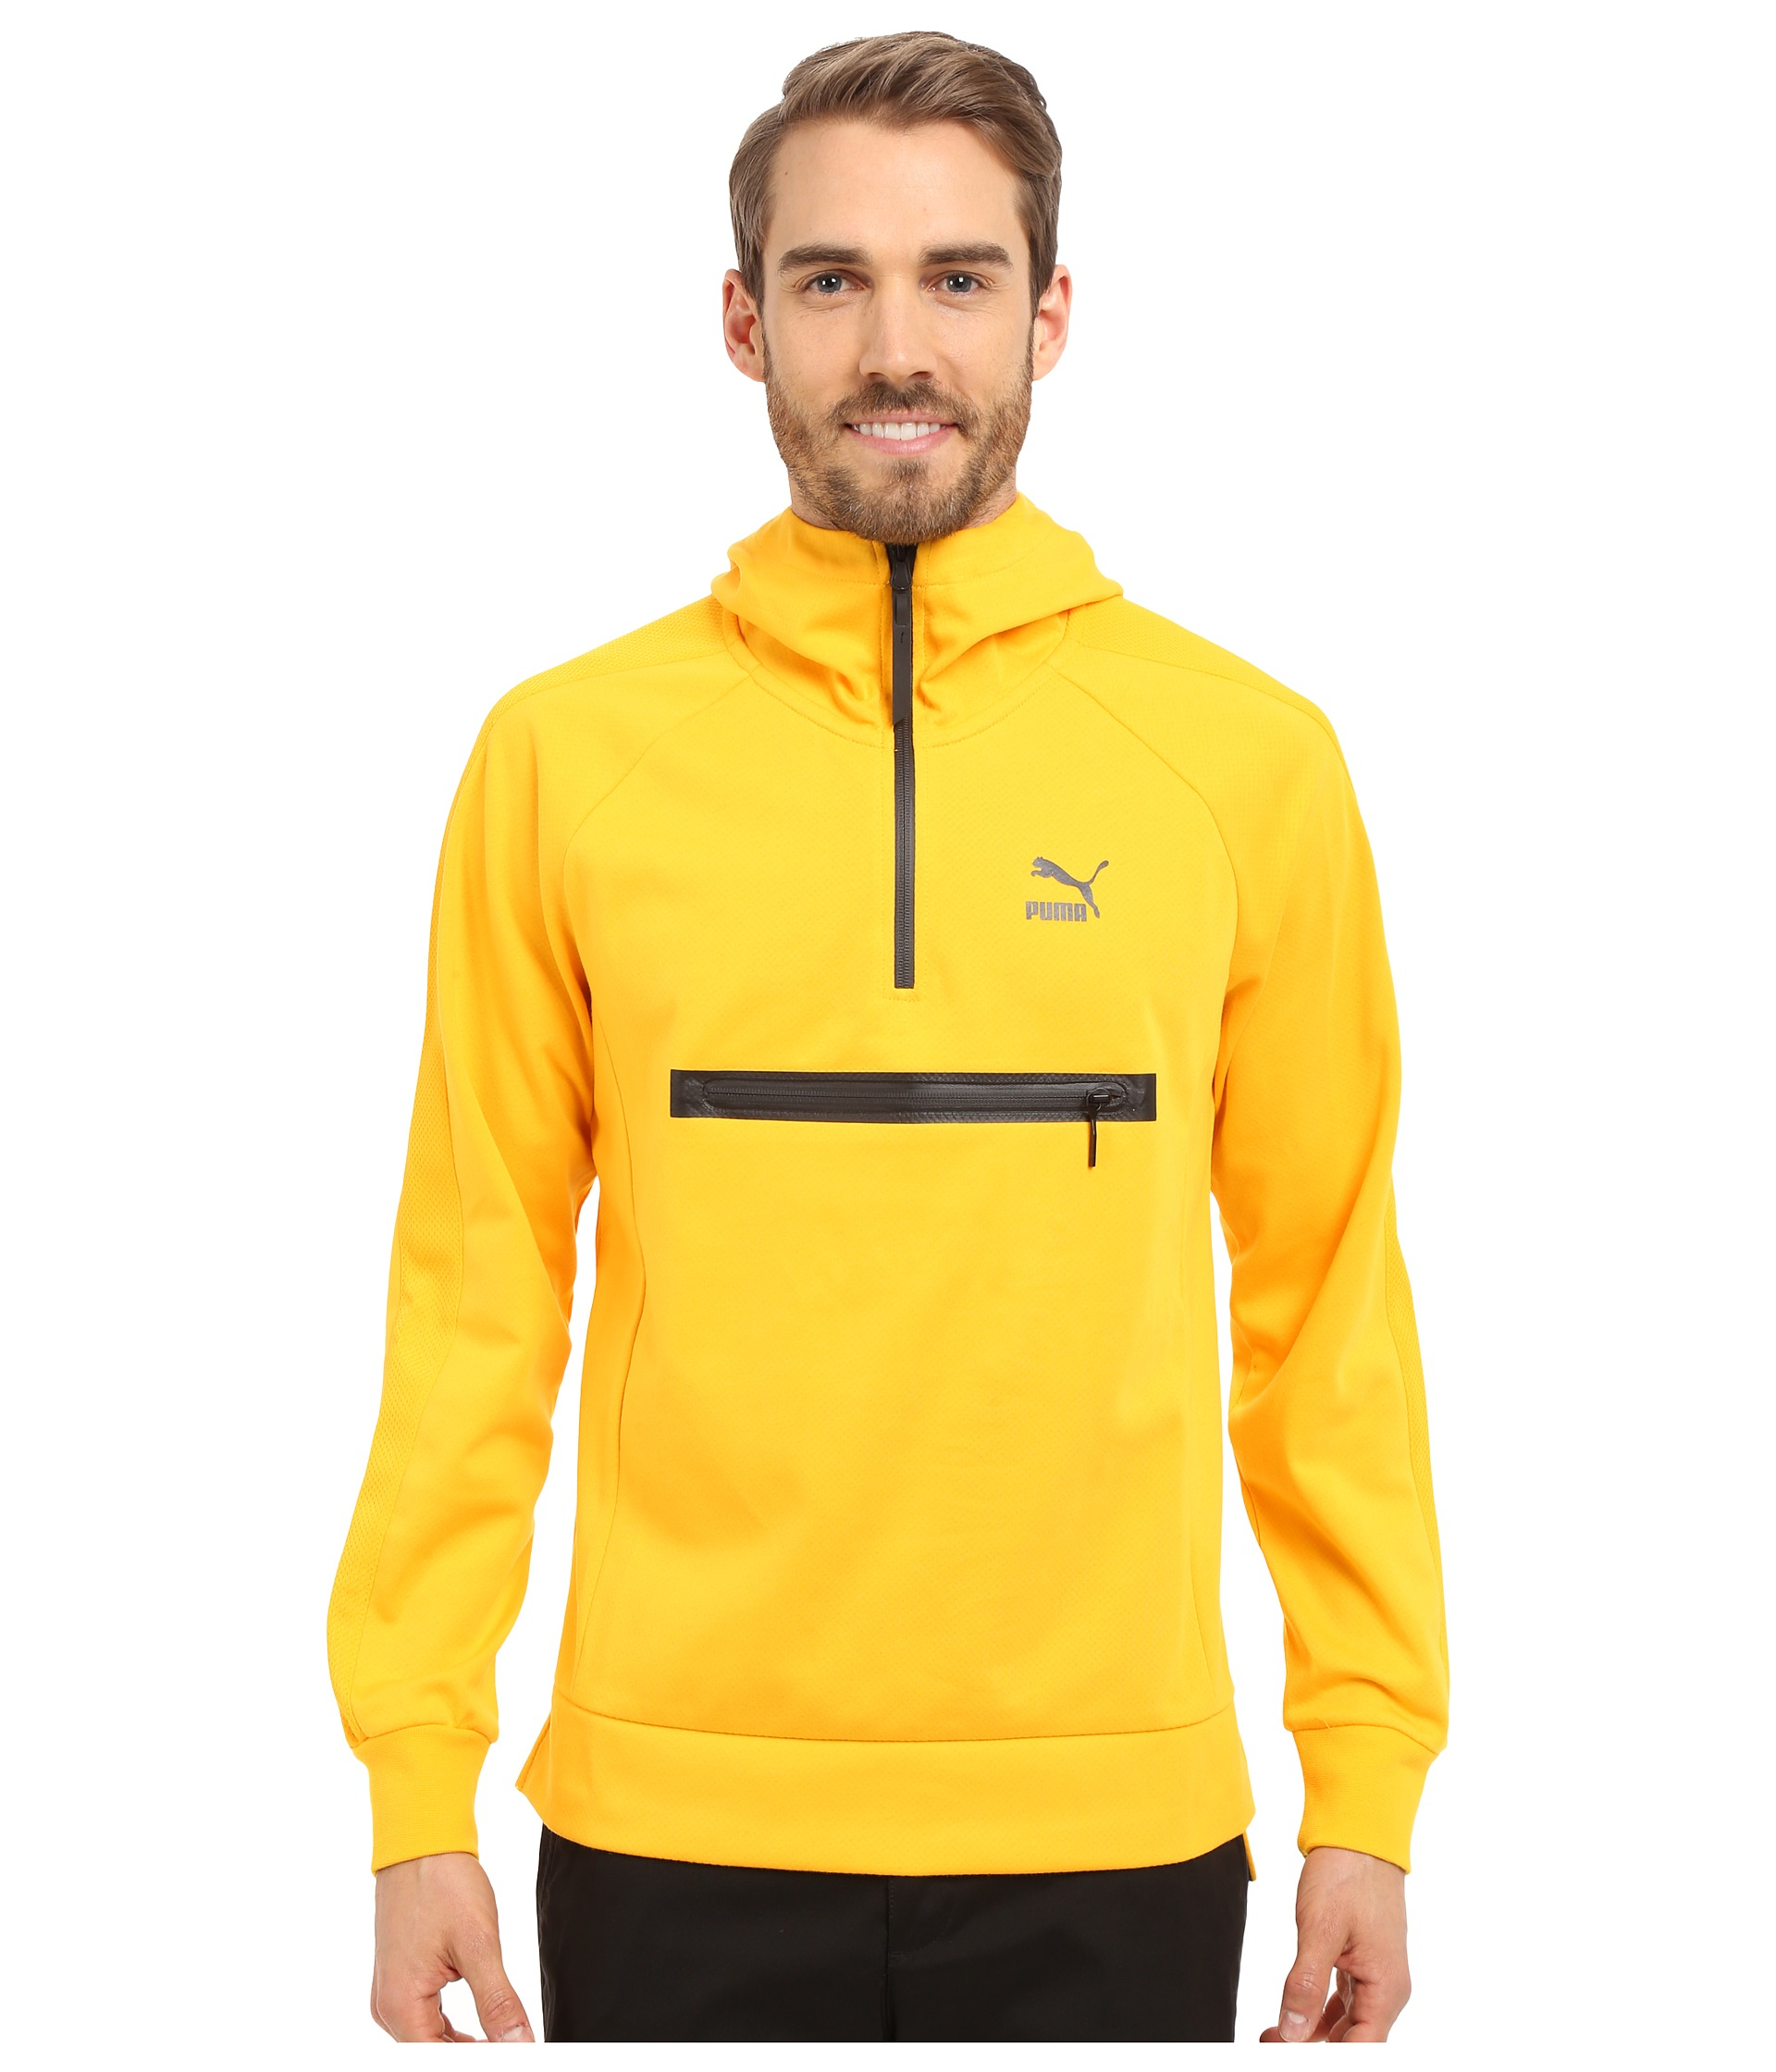 Lyst Yellow Men Savannah Puma Evo In For rxwarFnq